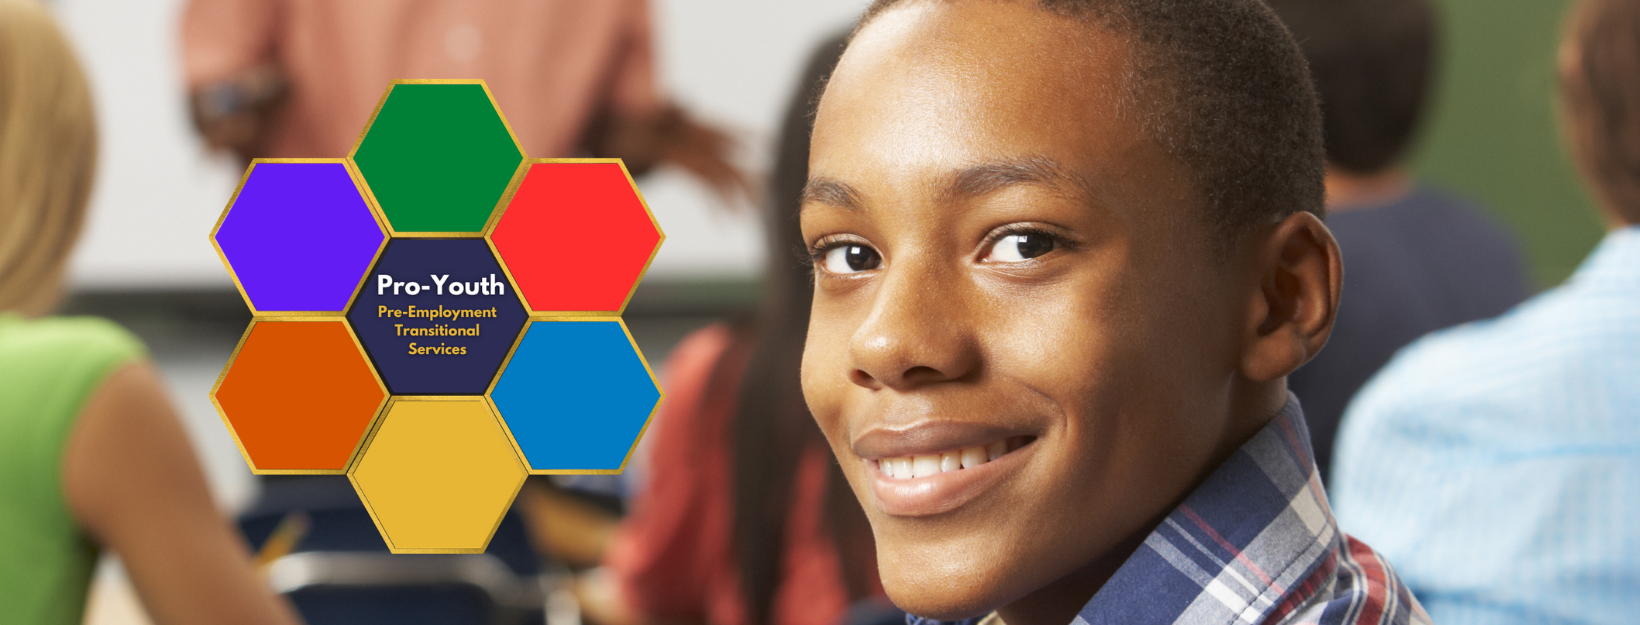 boy smiling in classroom with pro youth logo on side